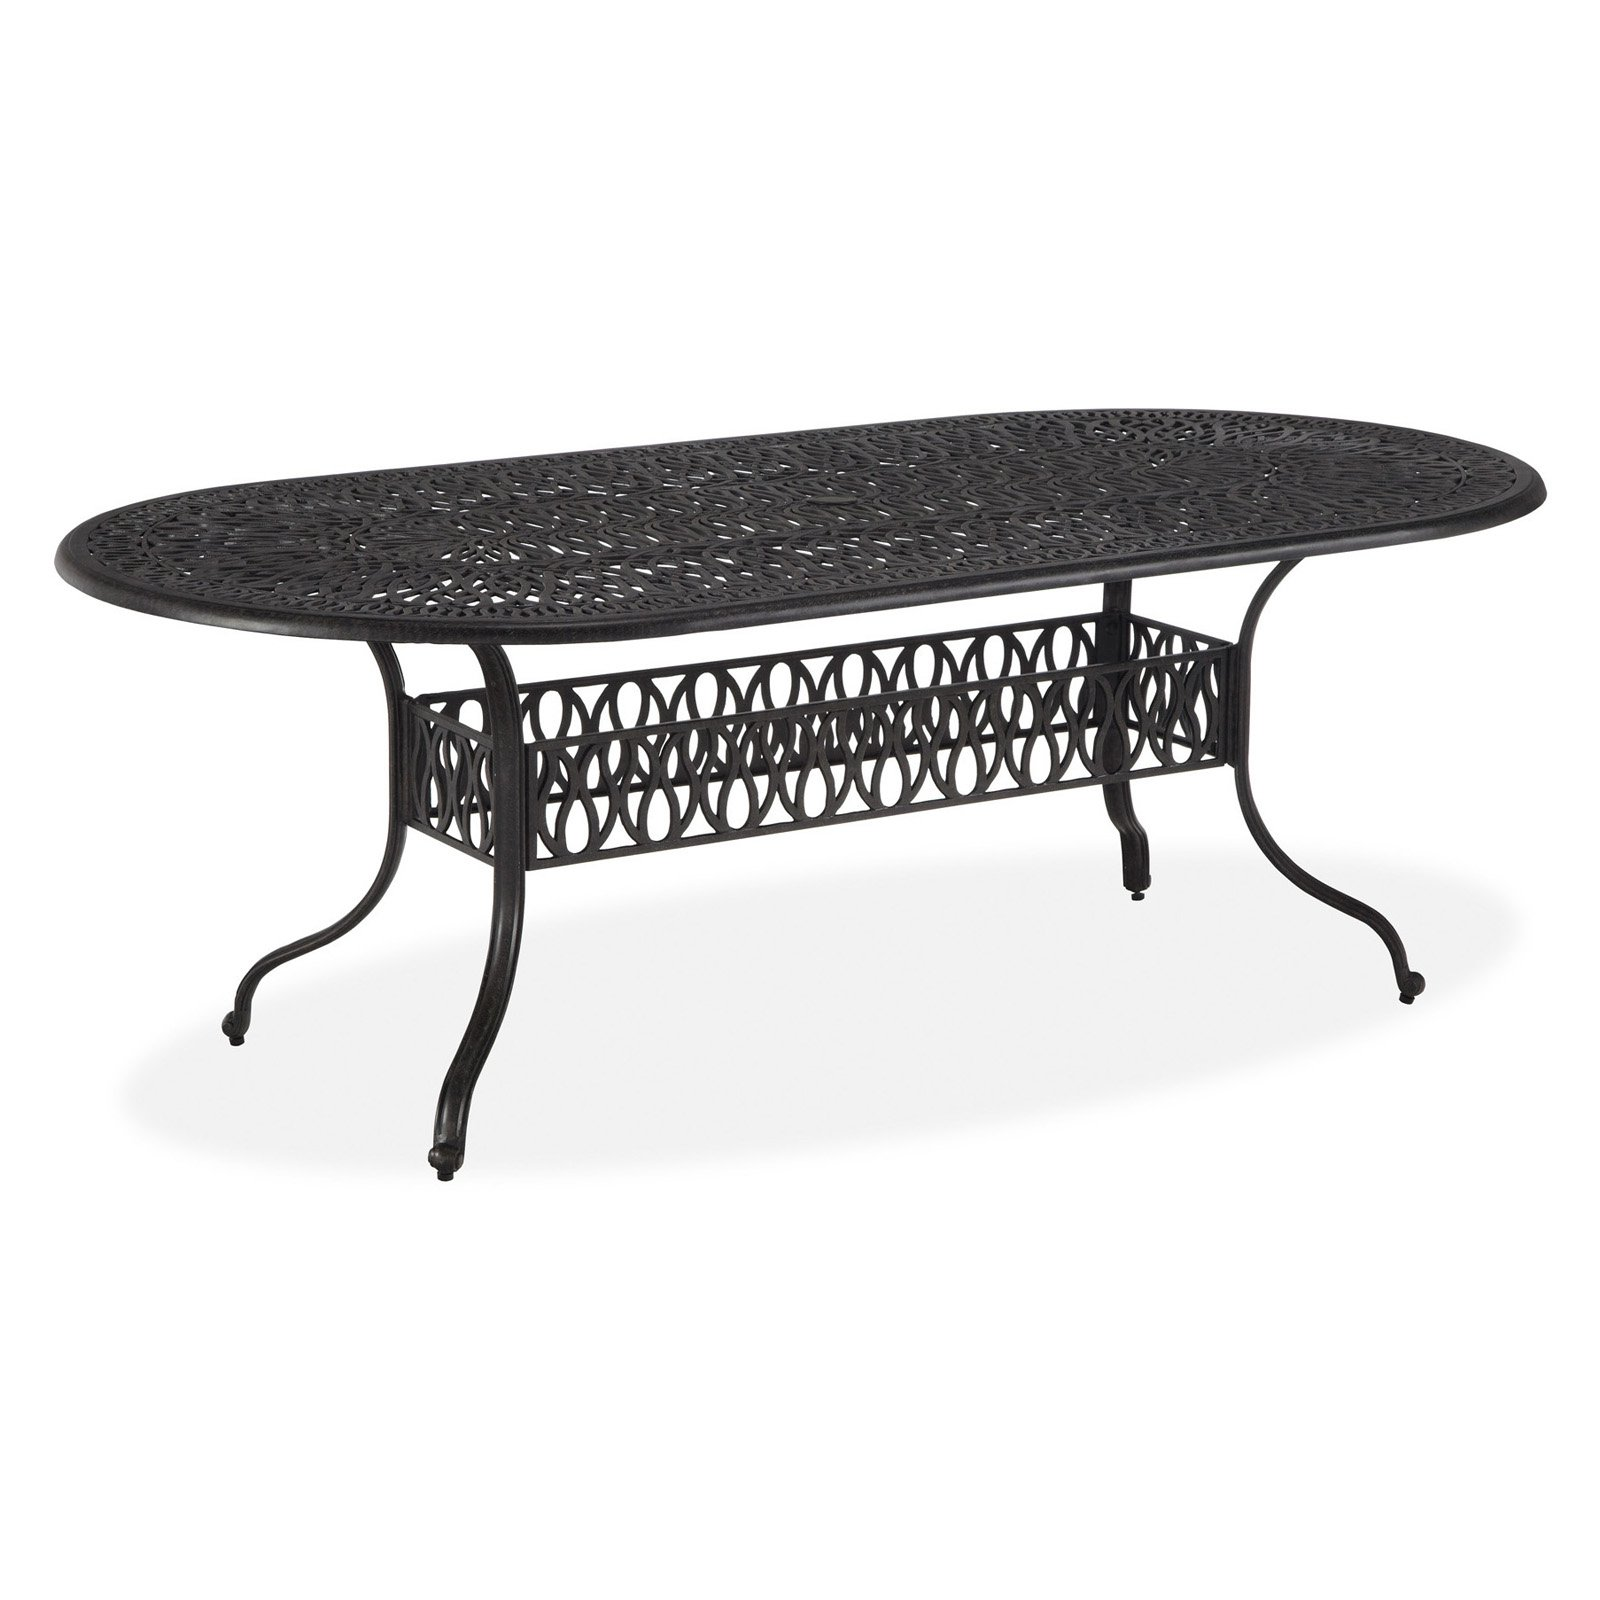 home styles floral blossom oval outdoor dining table cast aluminum charcoal finish